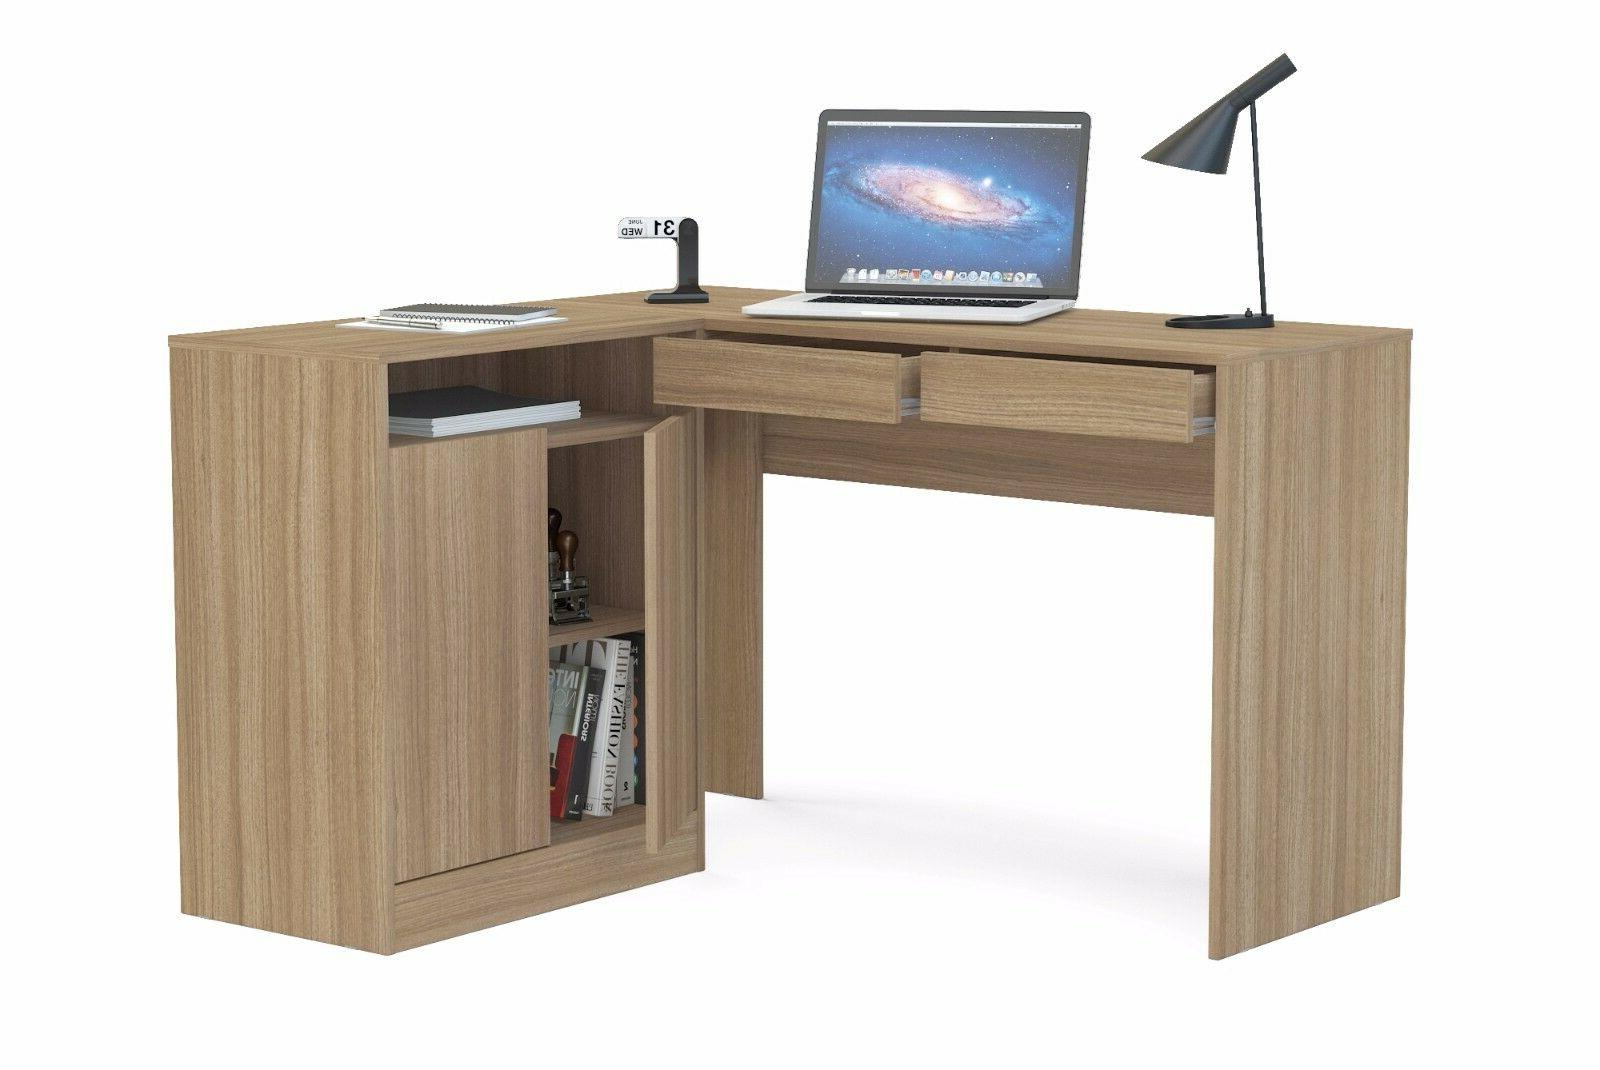 Boahaus Brown L-Desk, drawers, closed